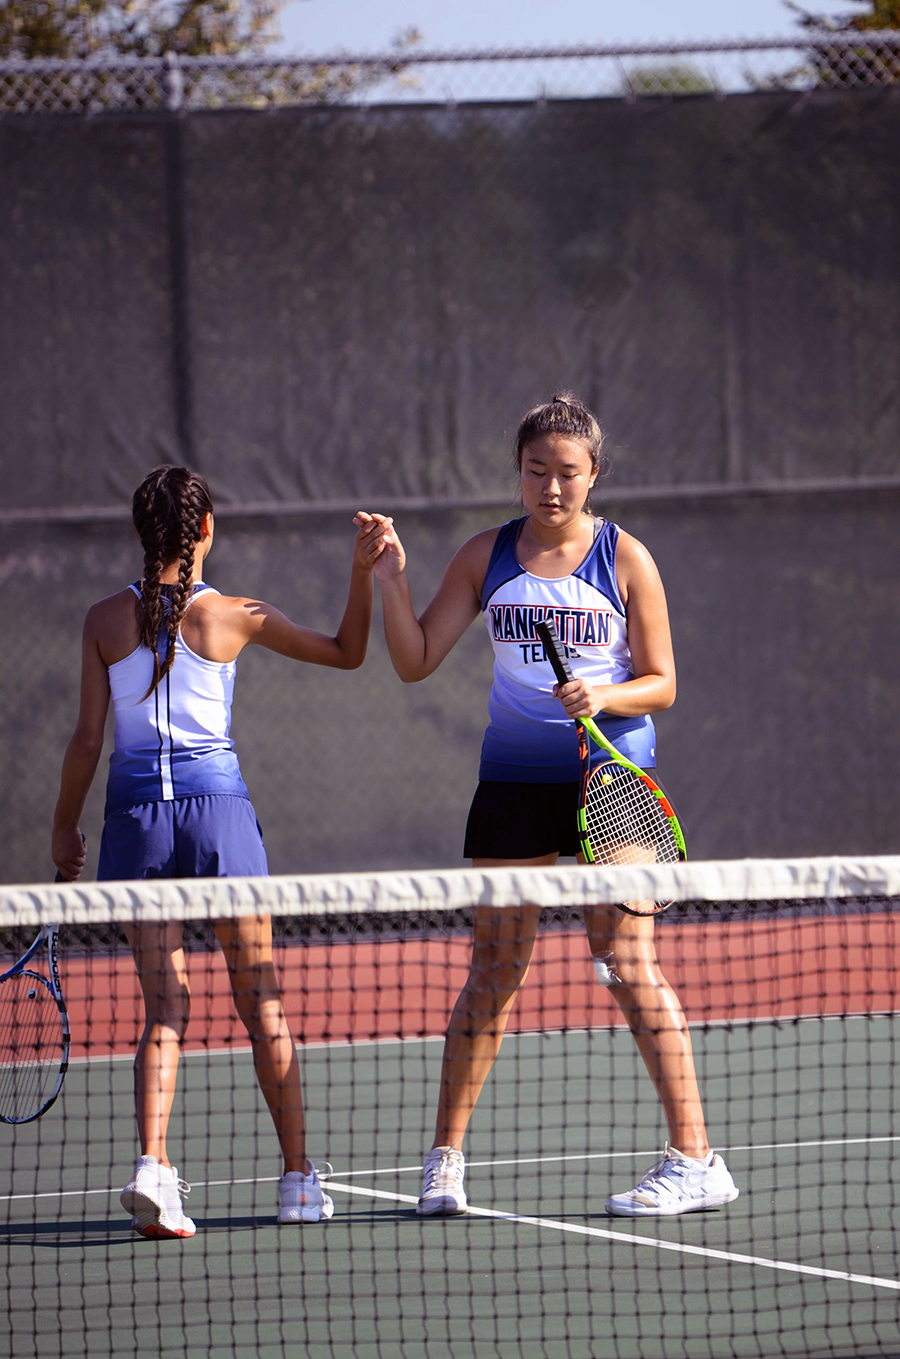 Senior+Joanna+Park+high-fives+sophomore+Hannah+Loub+during+their+Varisty+doubles+match.+The+two+placed+ninth+with+a+score+of+3-1%2C+contributing+to+the+team%27s+overall+placement+of+third.+